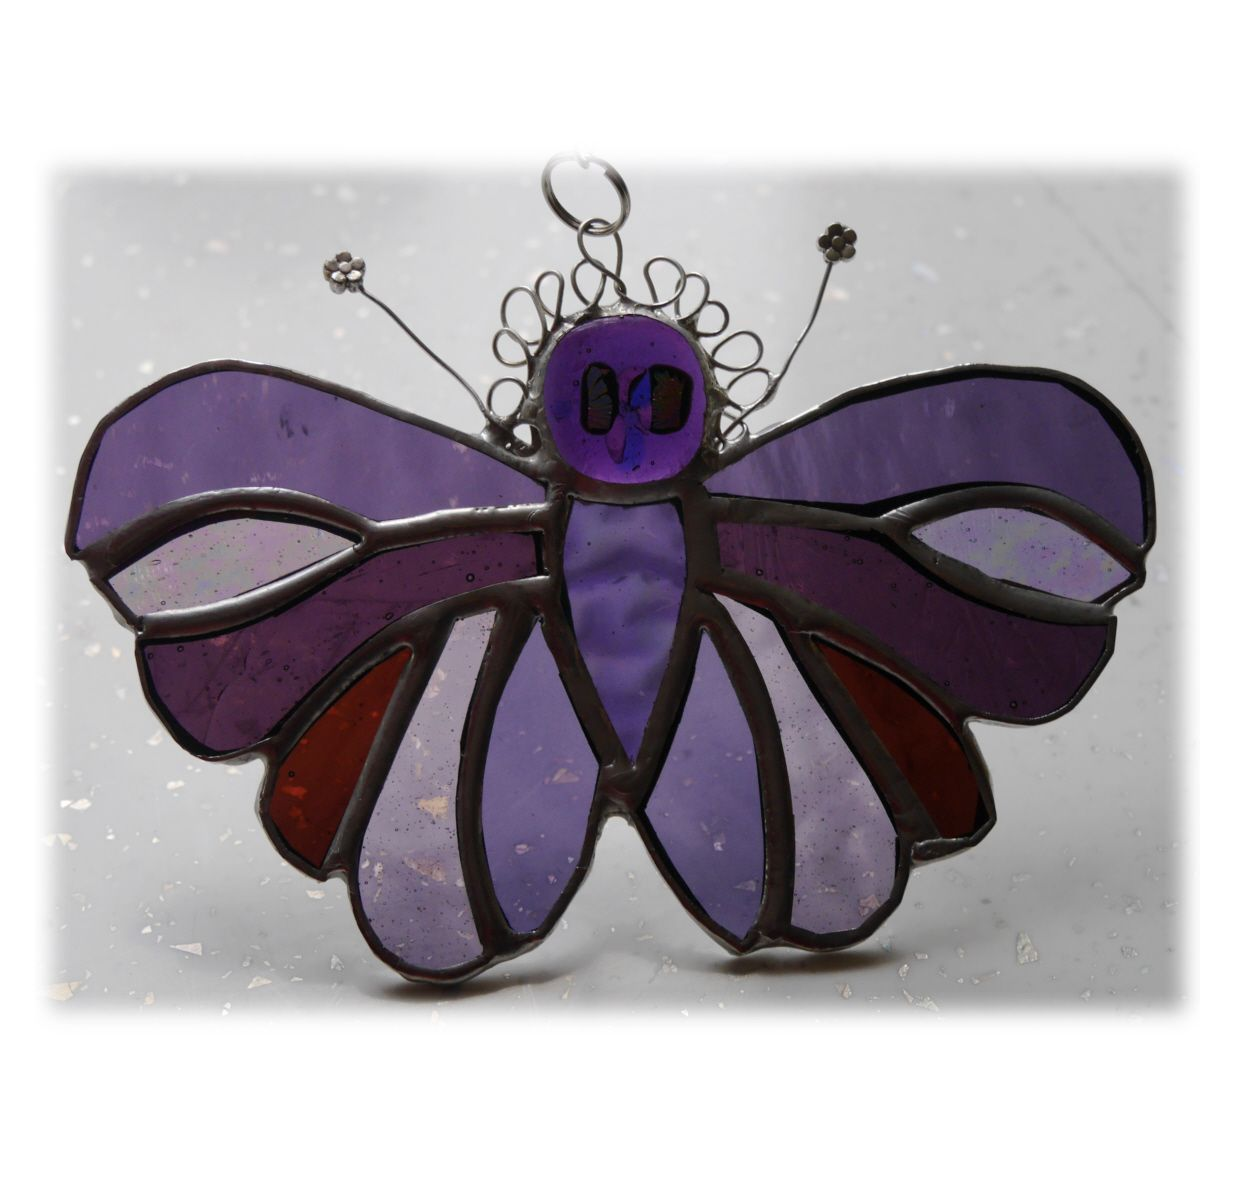 Butterfly Full 099 Purple #1909 FREE 14.50